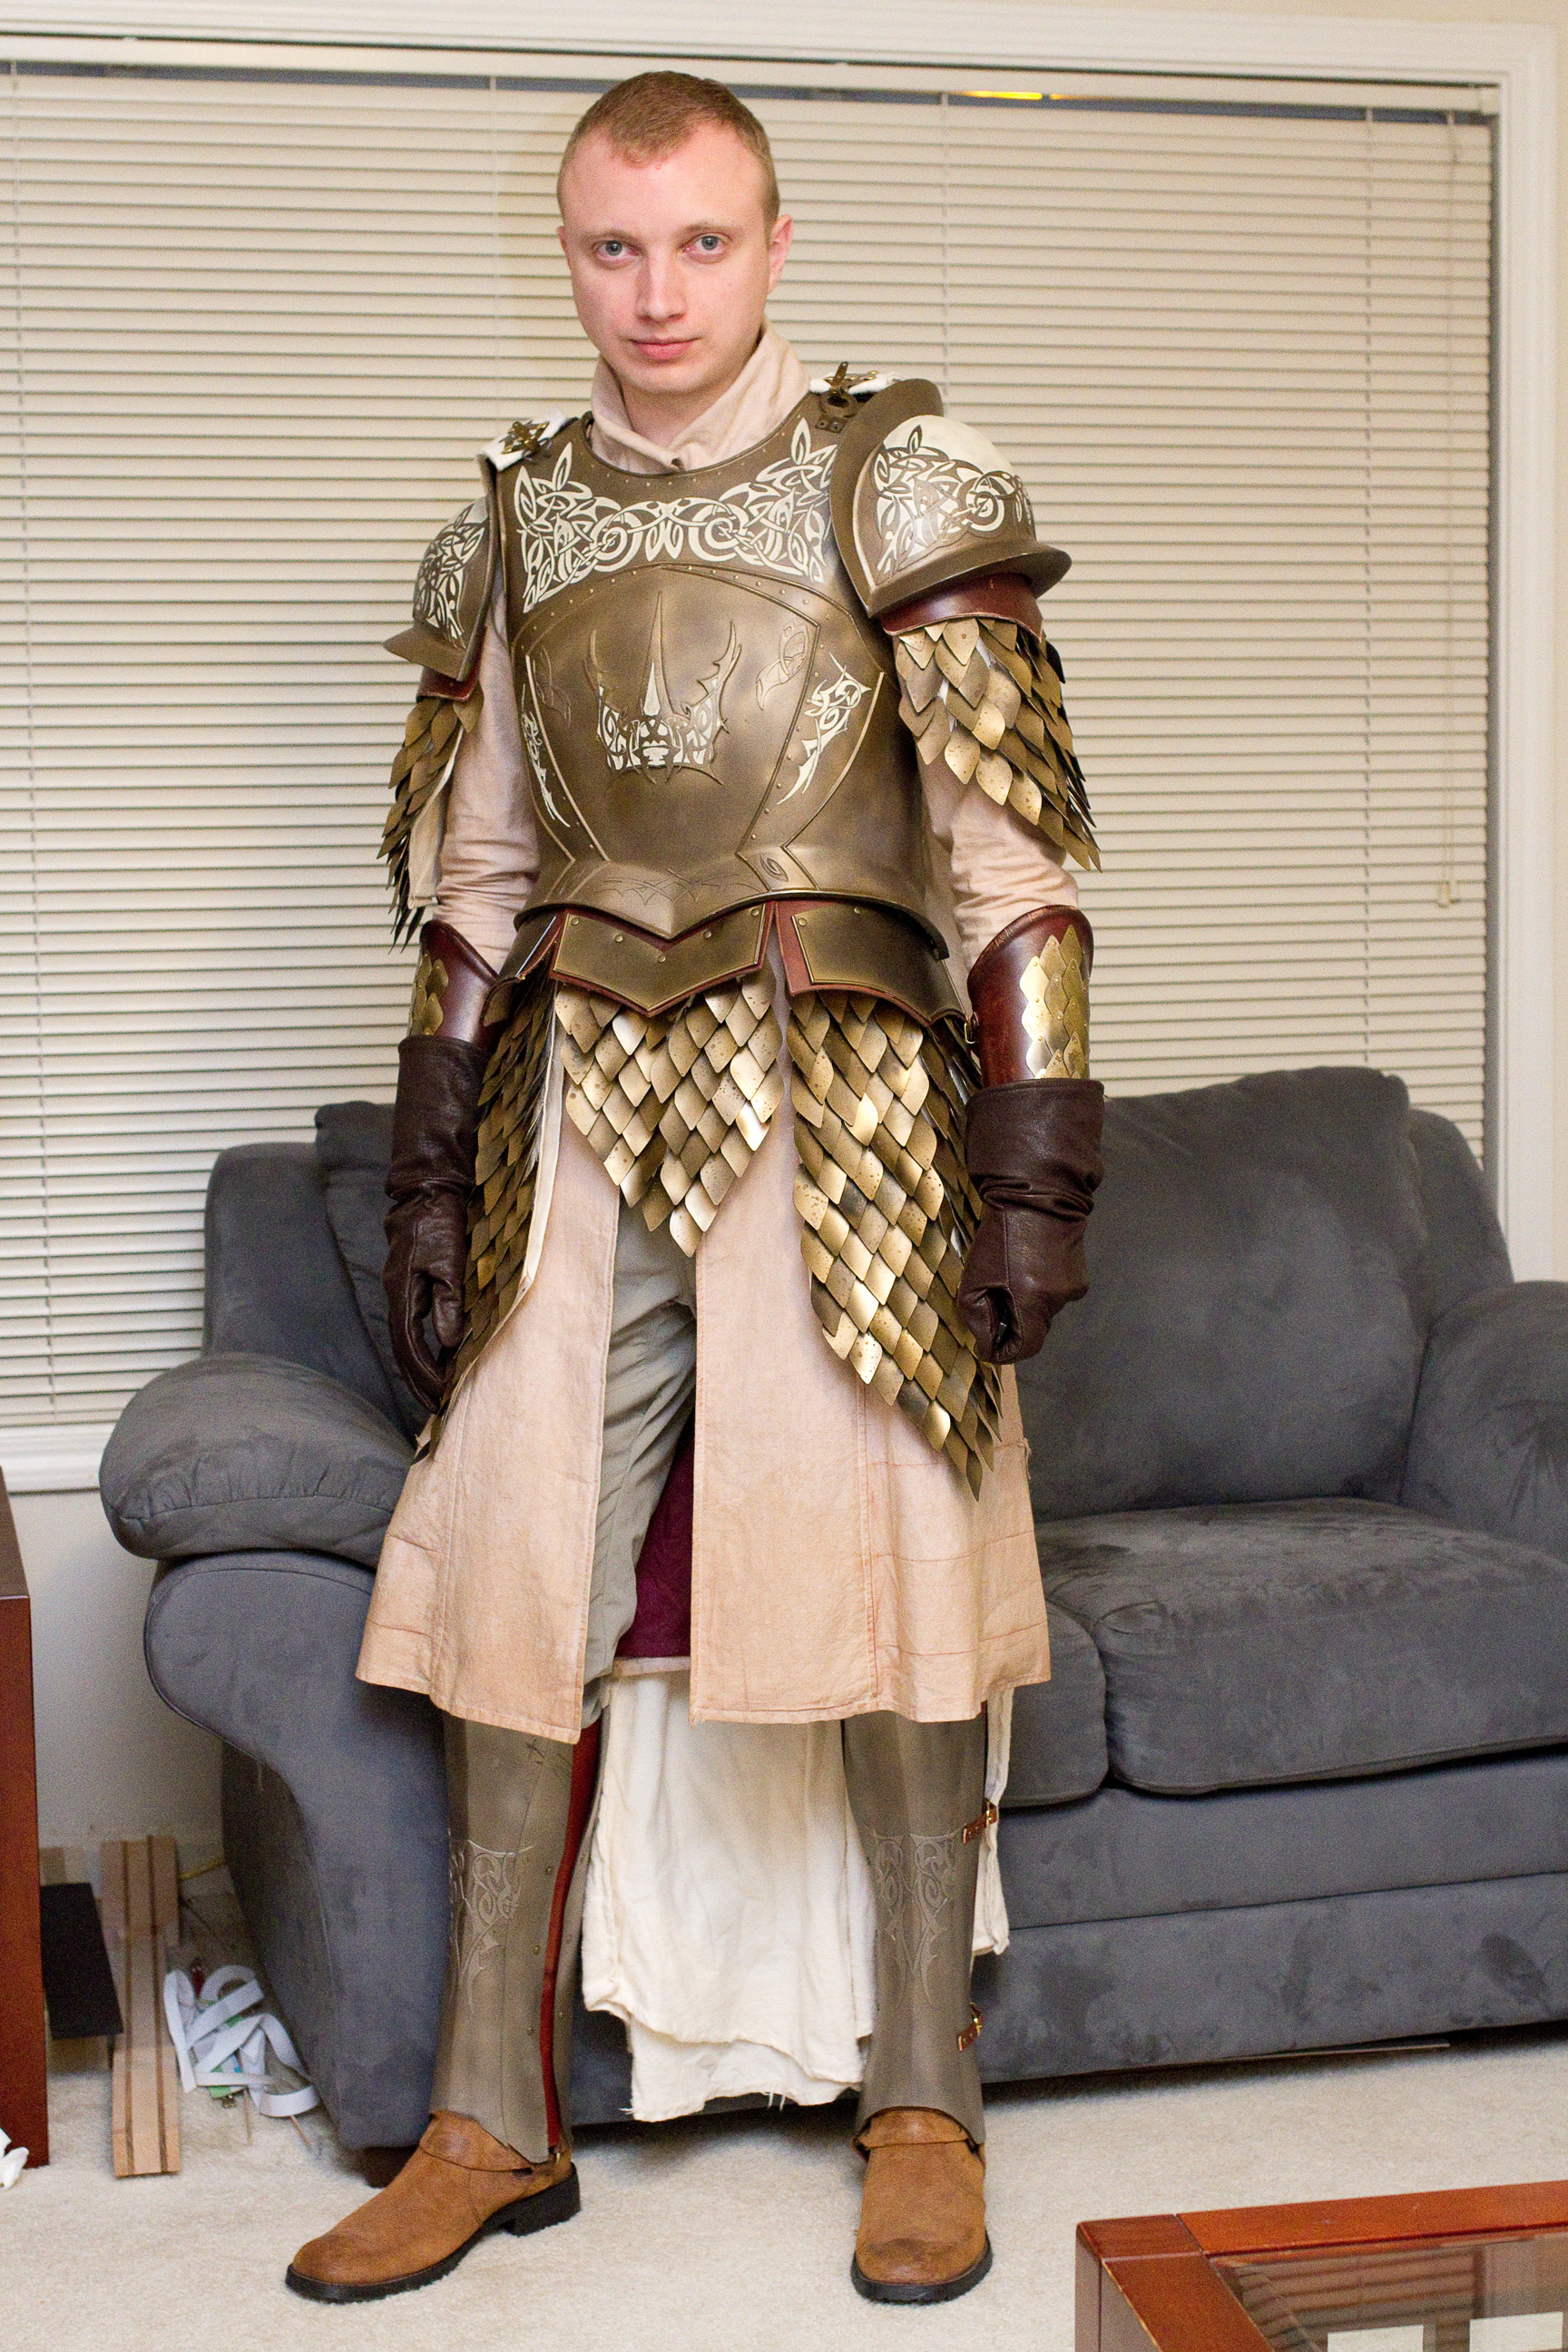 Dyeing Fabric for Game of Thrones Kingsguard Armor « Adafruit ... on walking dead armor, last man standing armor, legend of the seeker armor, lord of the rings armor, steven universe armor,